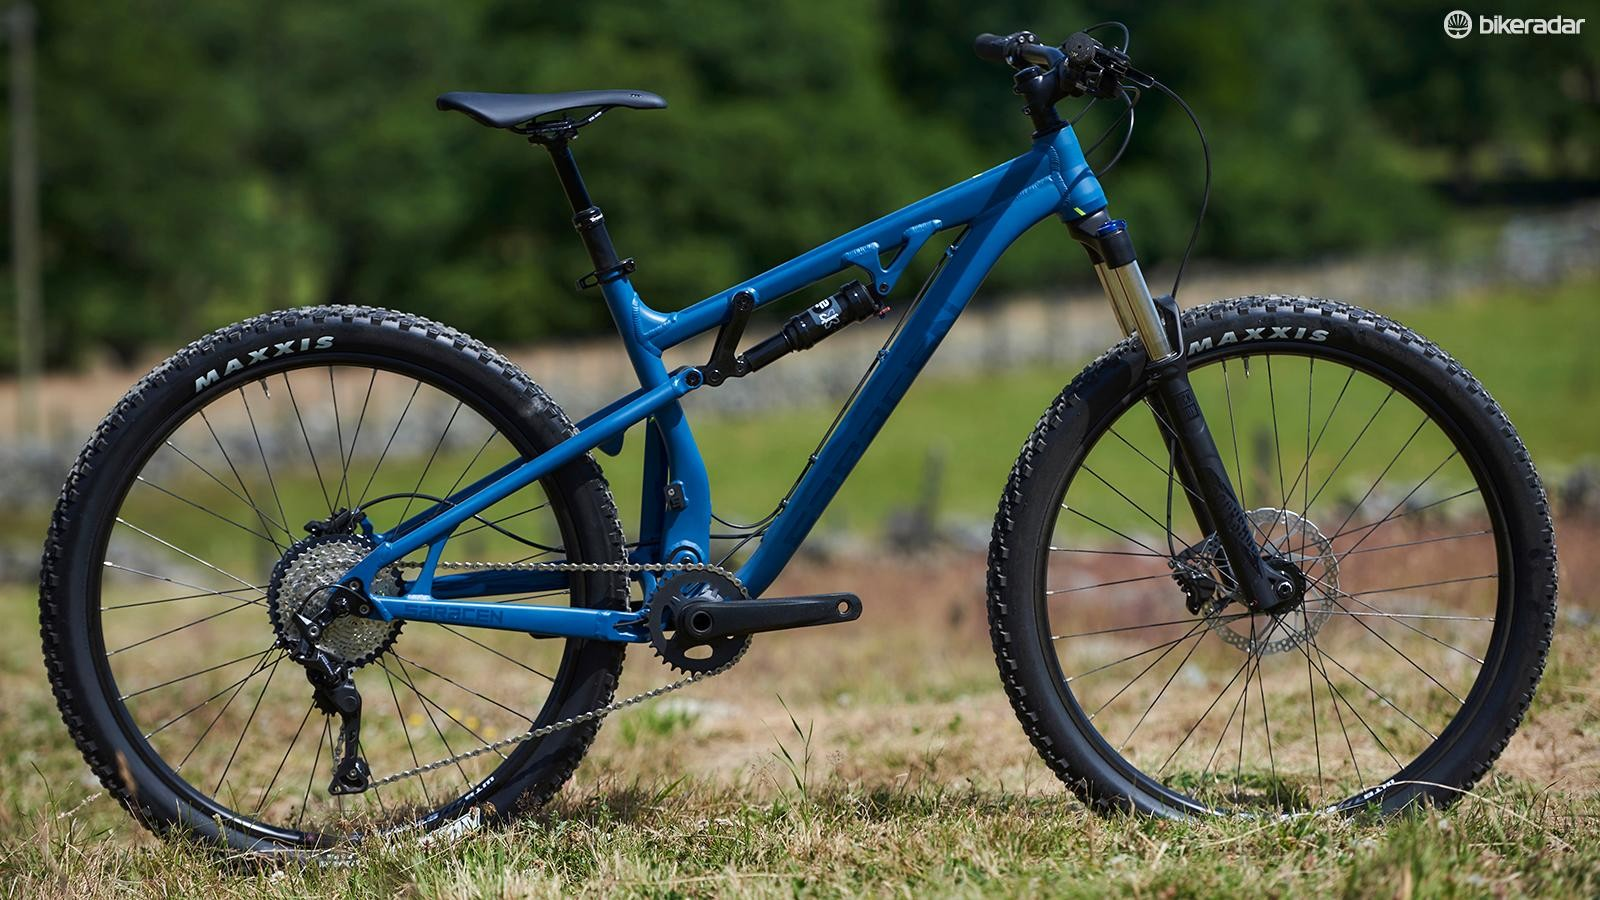 The alloy Kili Flyer has been brought in to satisfy the entry level market. It retails for £1,849.99